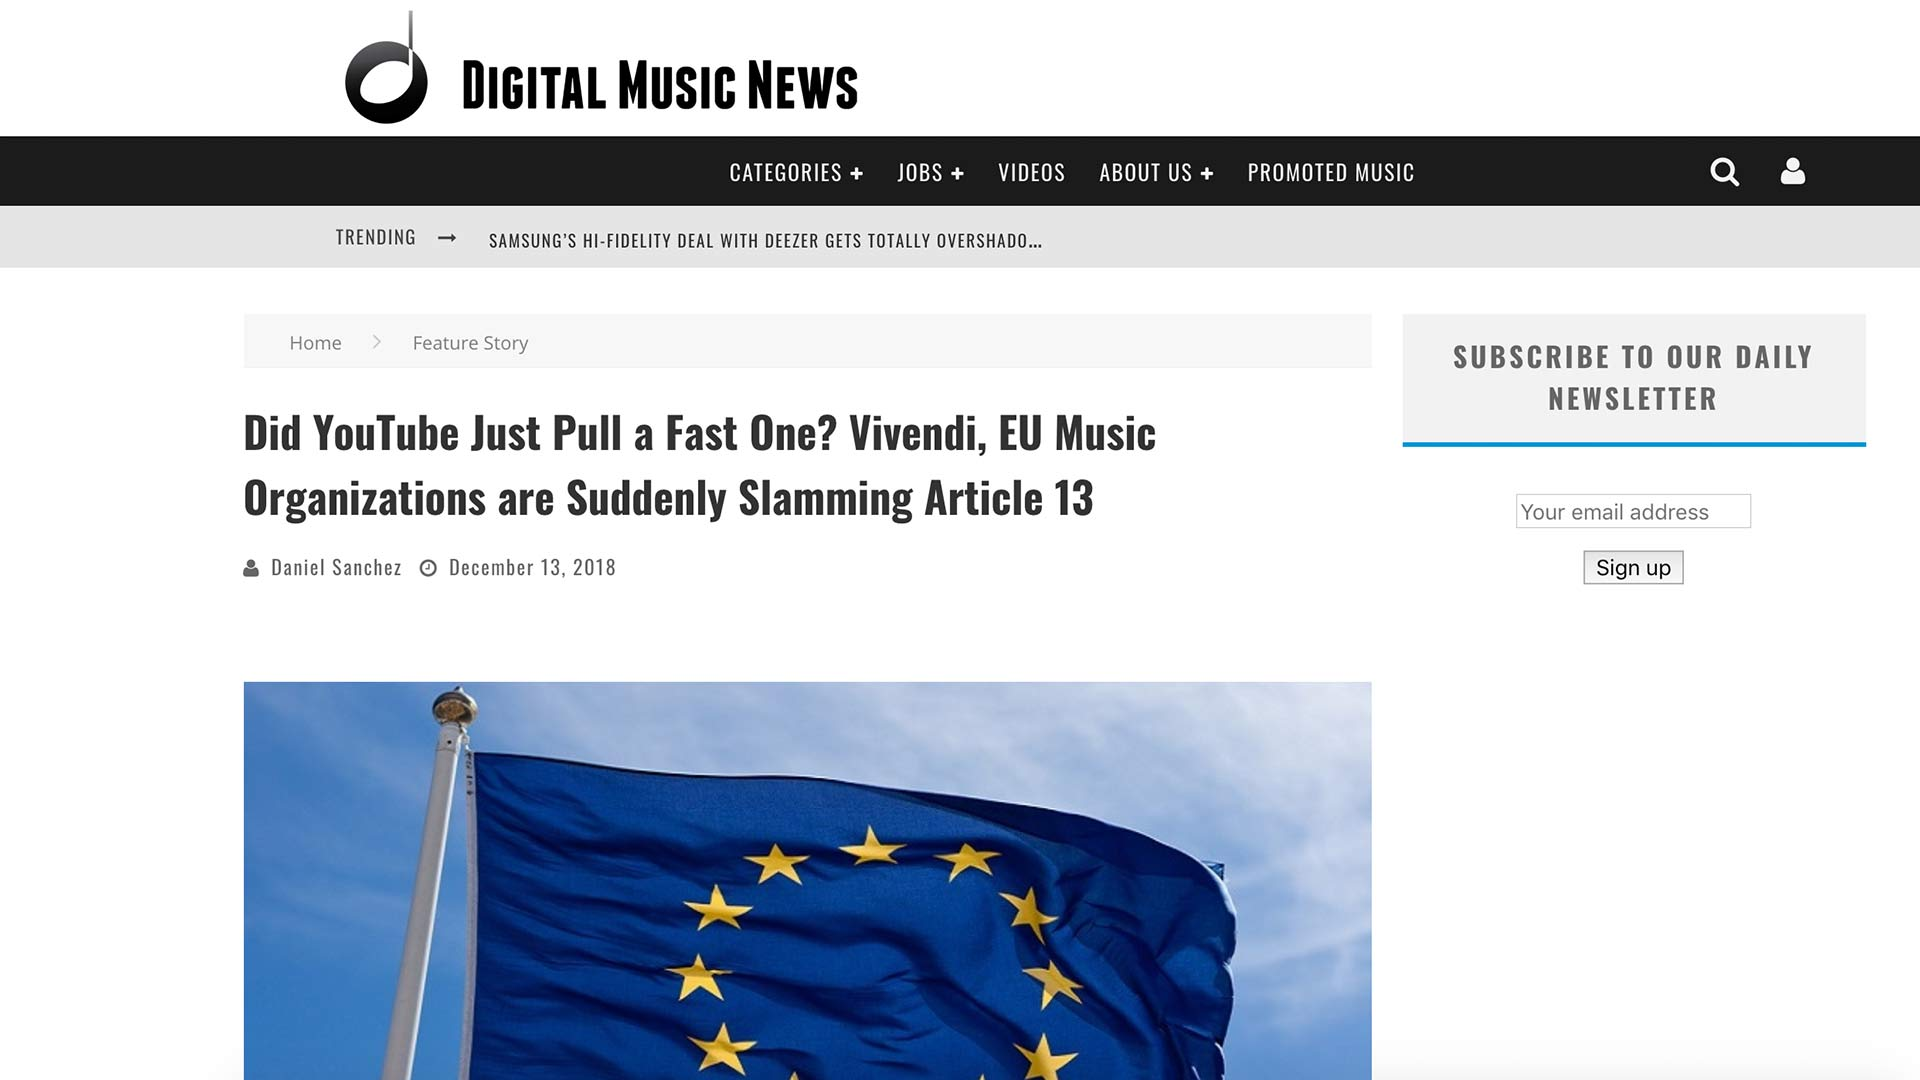 Fairness Rocks News Did YouTube Just Pull a Fast One? Vivendi, EU Music Organizations are Suddenly Slamming Article 13